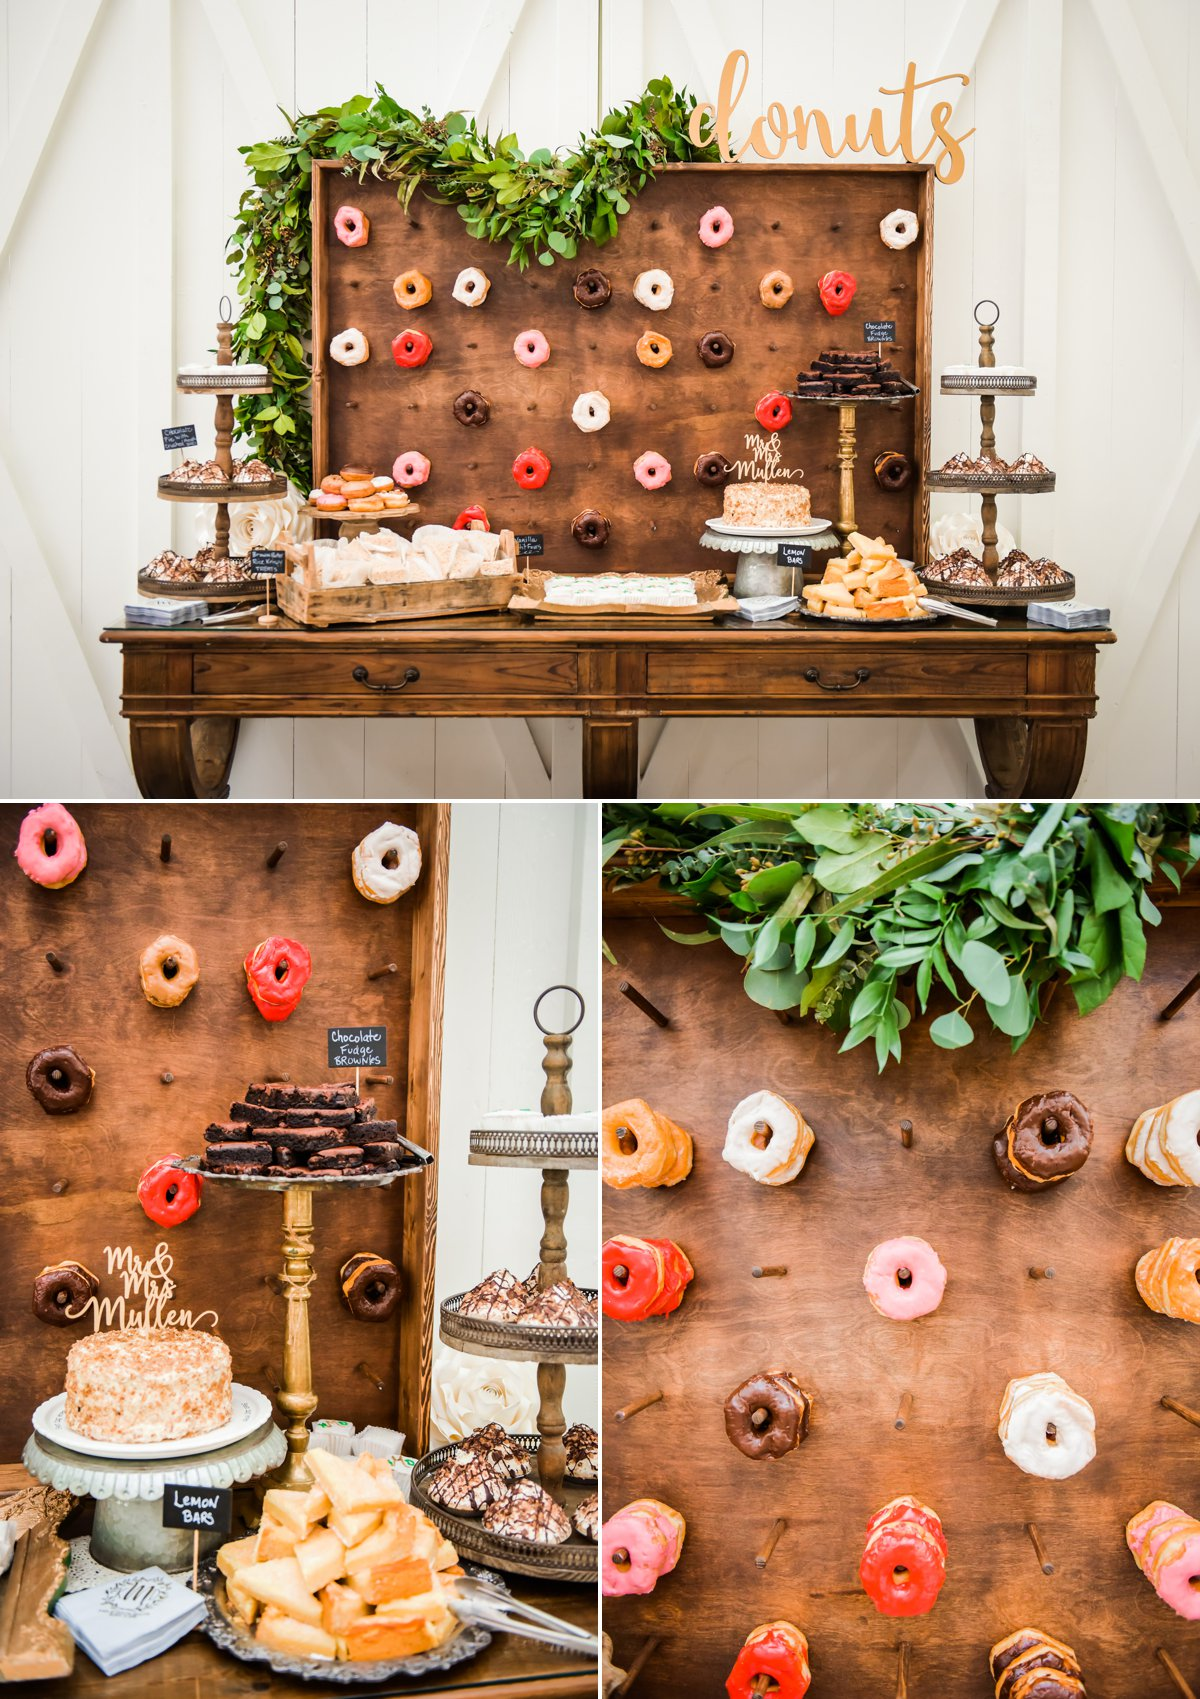 The Farmhouse Wedding Venue Houston Dessert Bar with Donuts